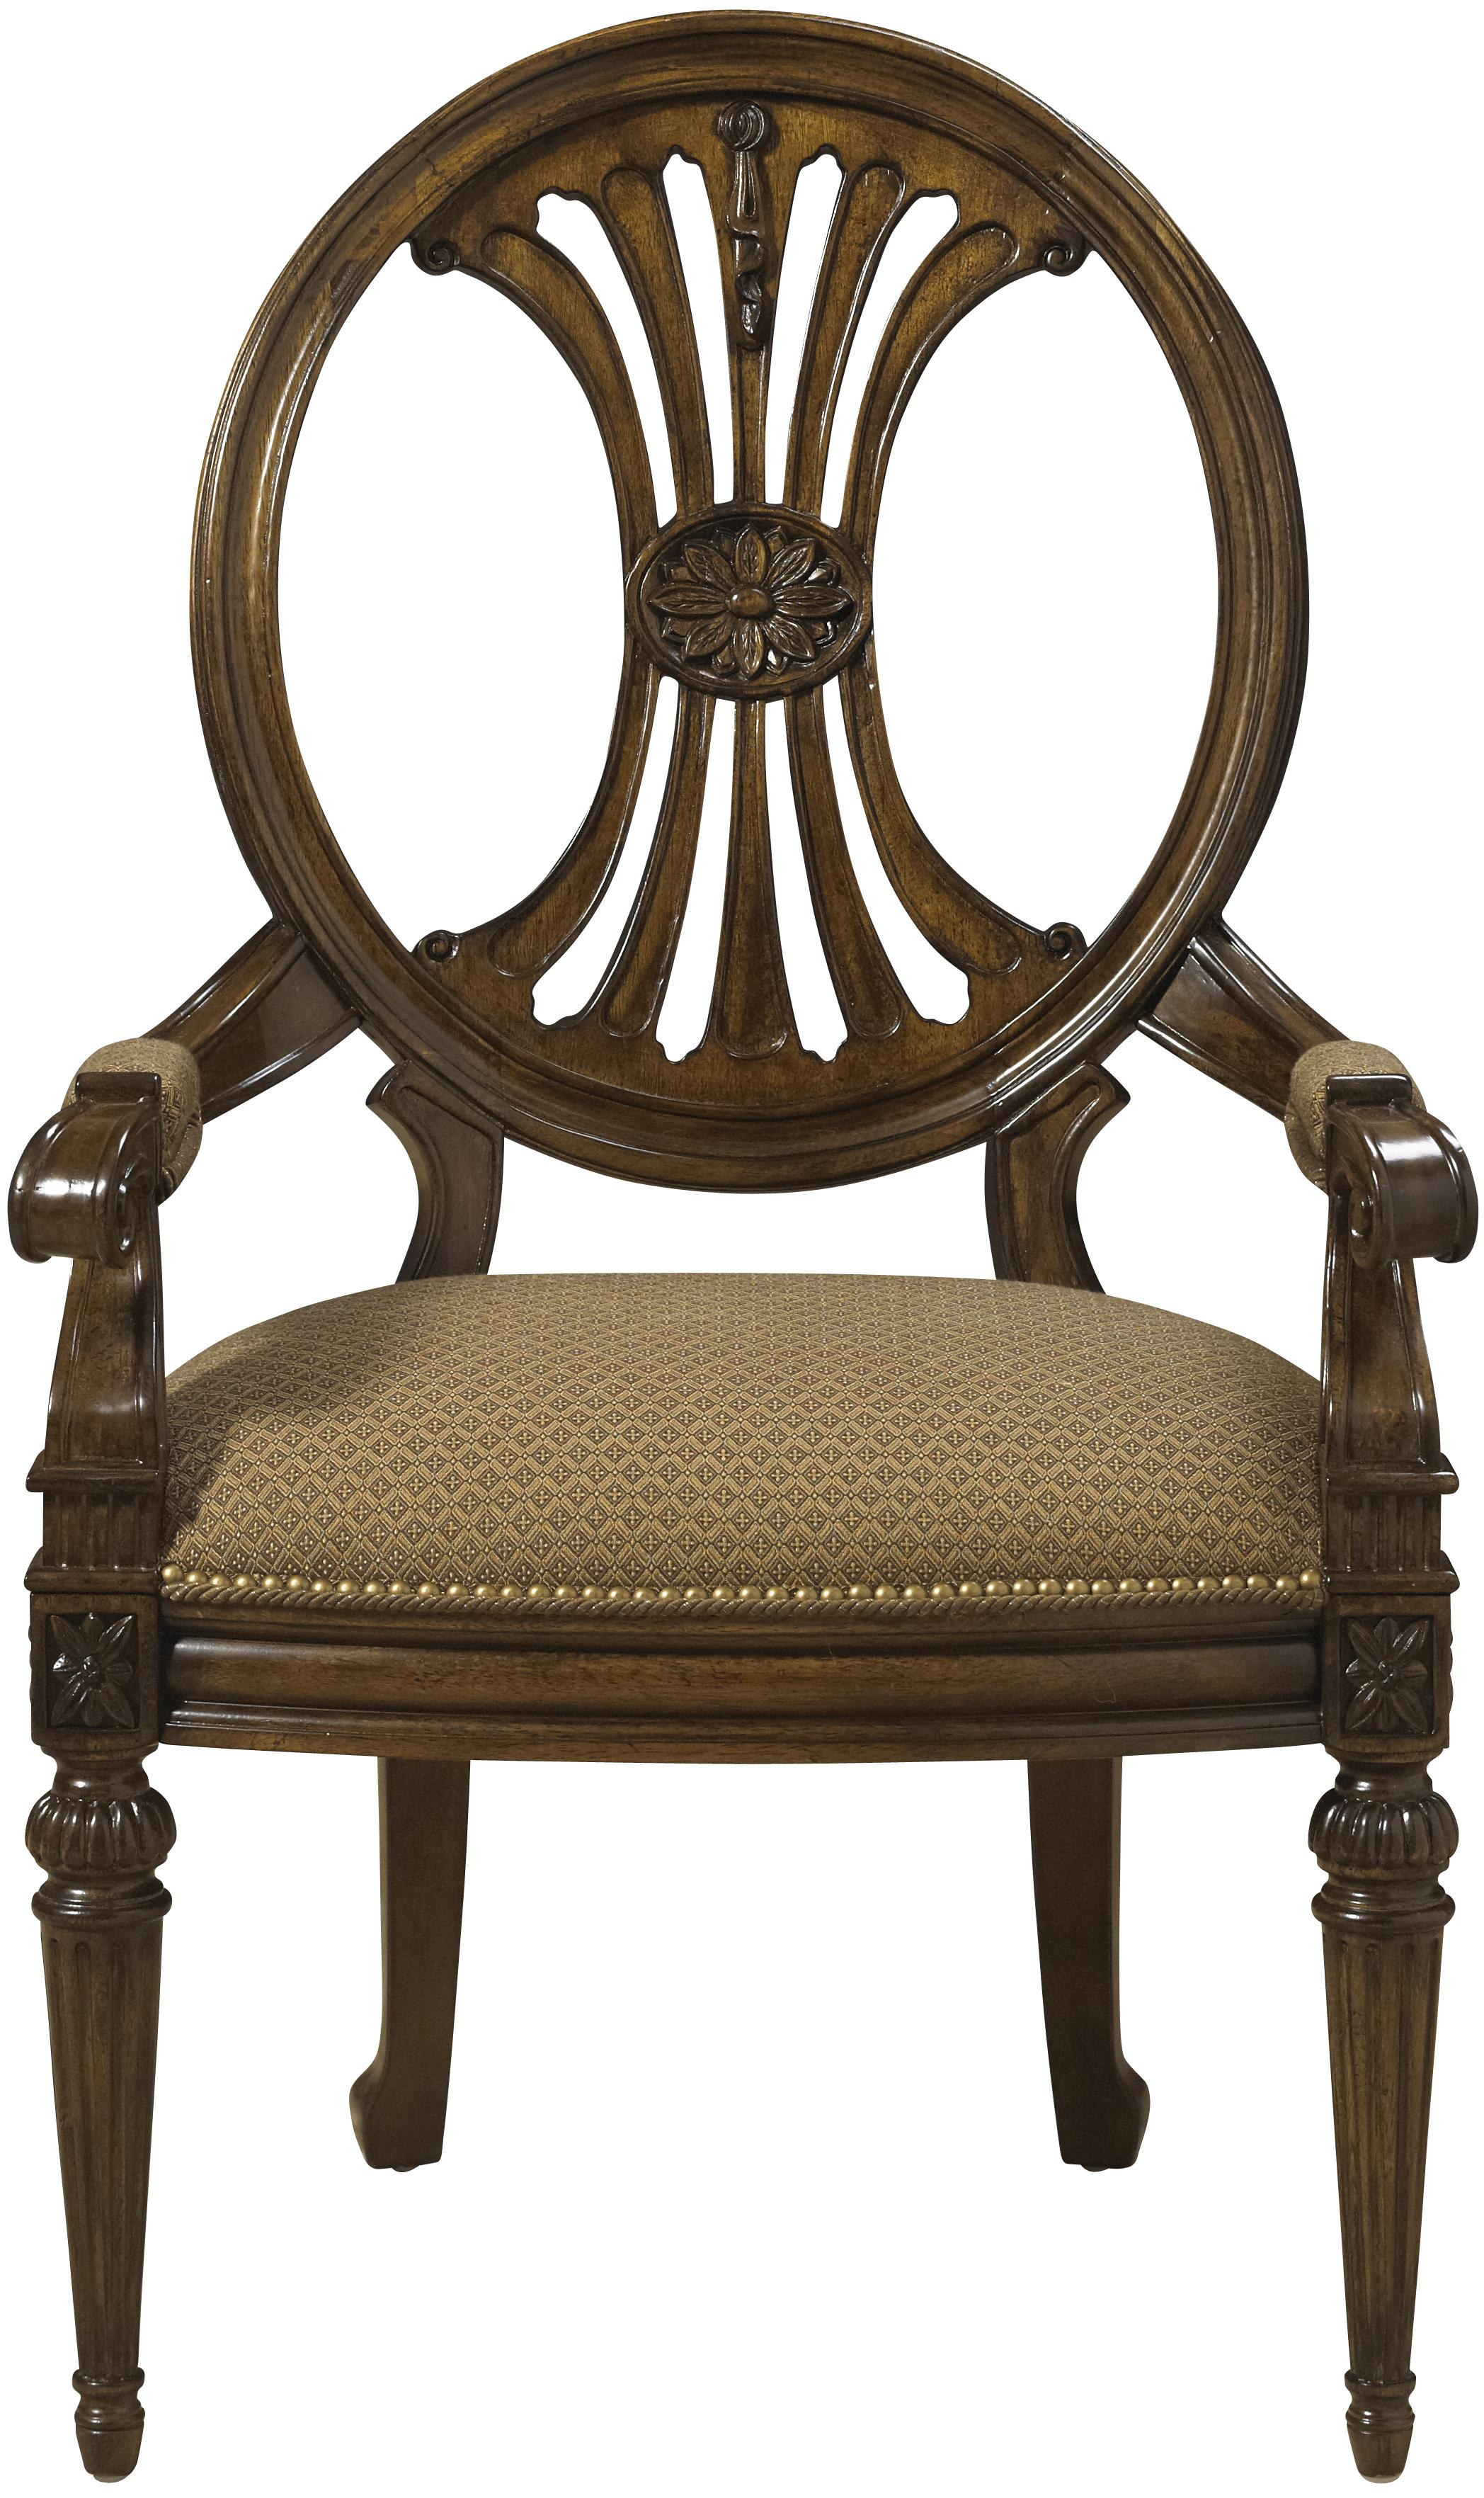 Traditional Antique Style Dining Arm Chair With Coffee Colored Upholstery